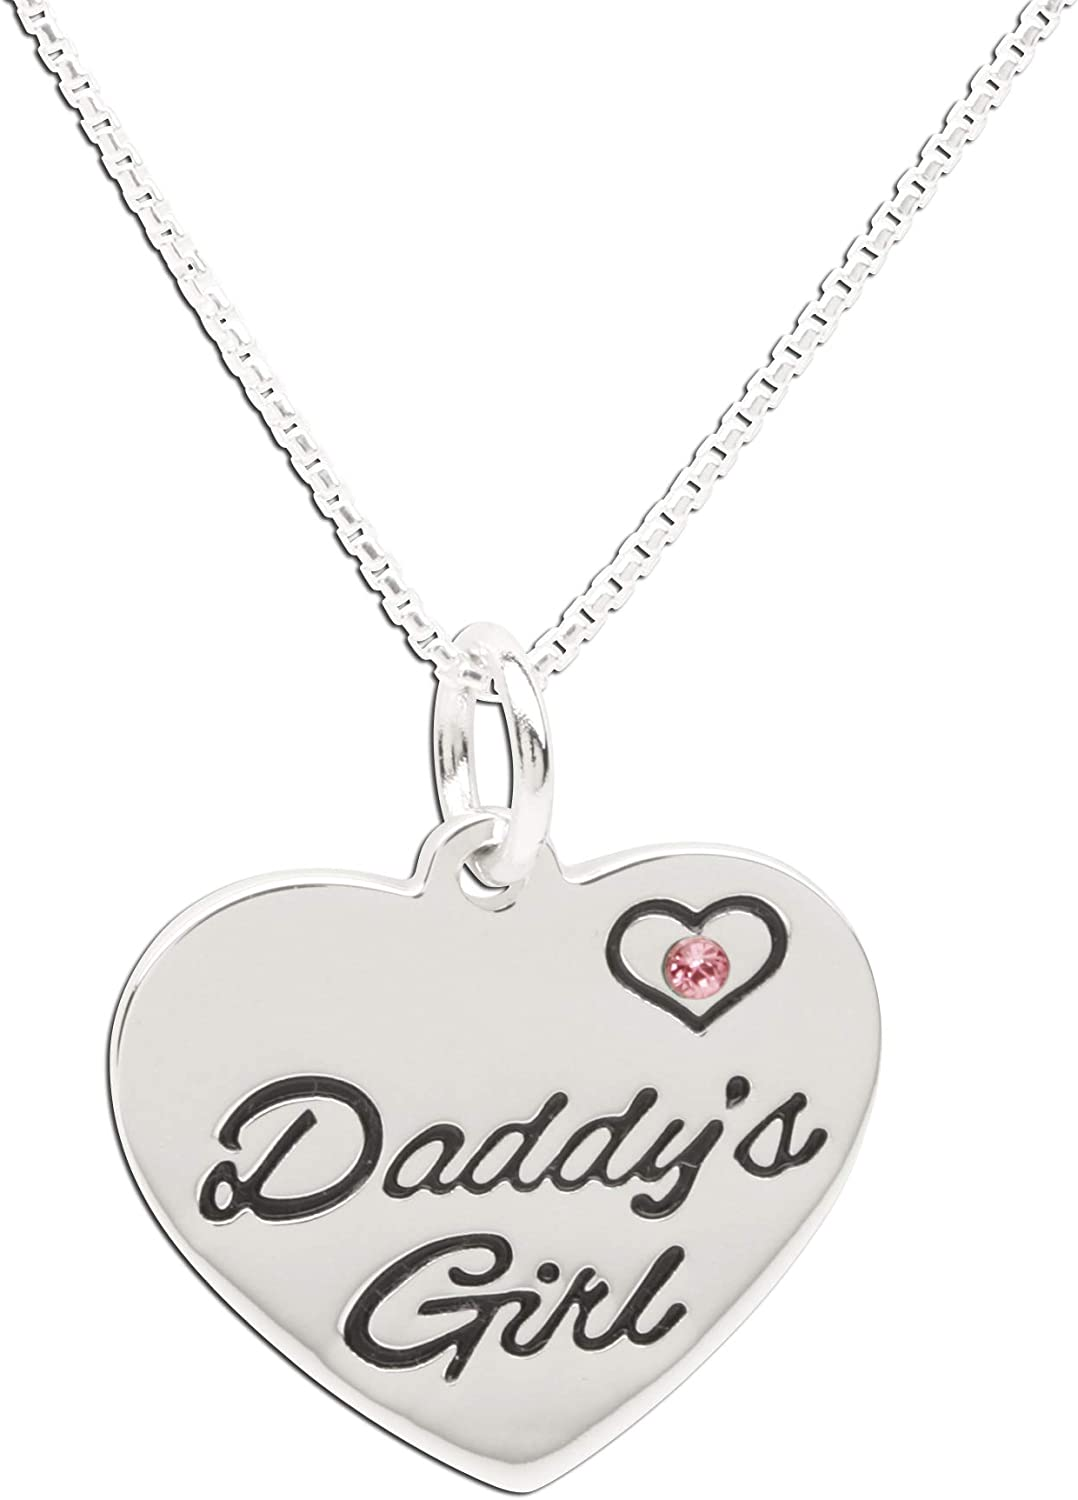 Beautiful Daddys Little Girl Heart Shaped Necklace Pendant Claddagh Gold CM2253WH-Pendant-10k